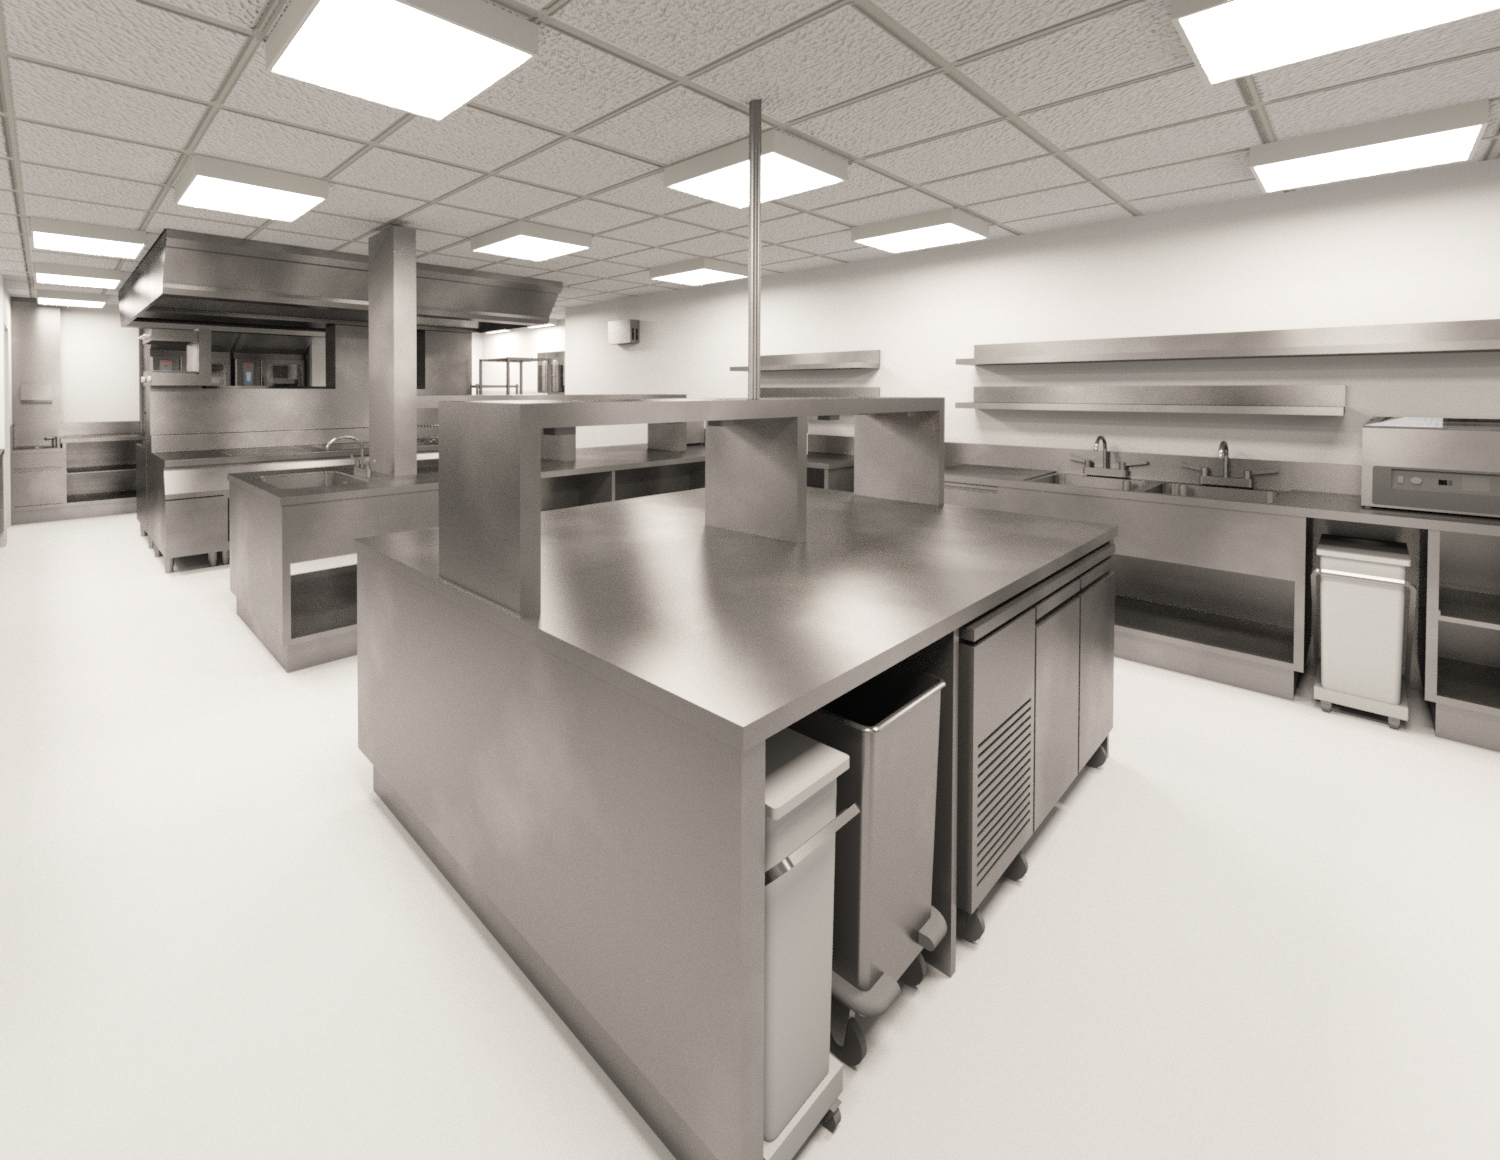 bim kitchen design consultants